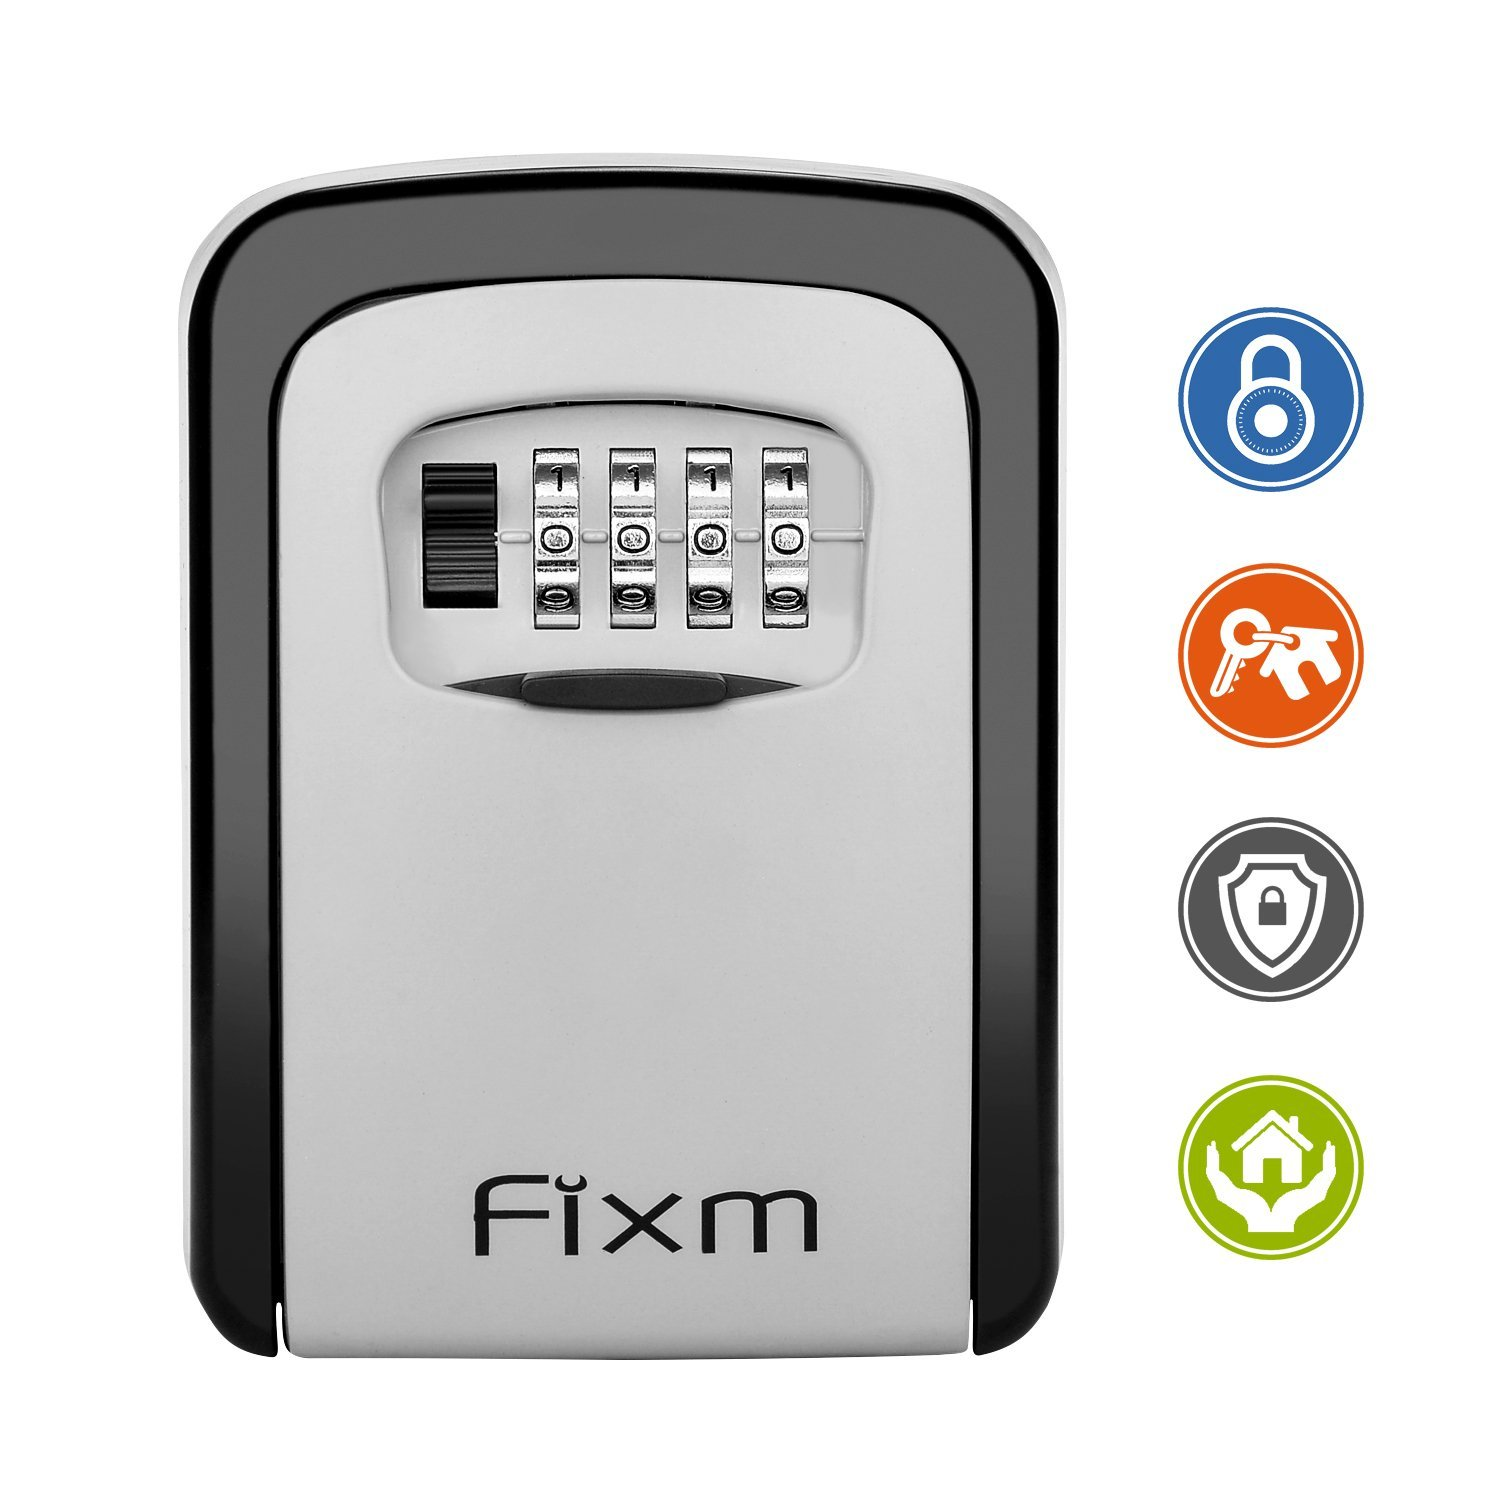 Fixm Combination Key Storage Lock Box,Wall Mounted 4-Digit Resettable Key Safe Storage Box,Resettable Code-Holds 5 Keys